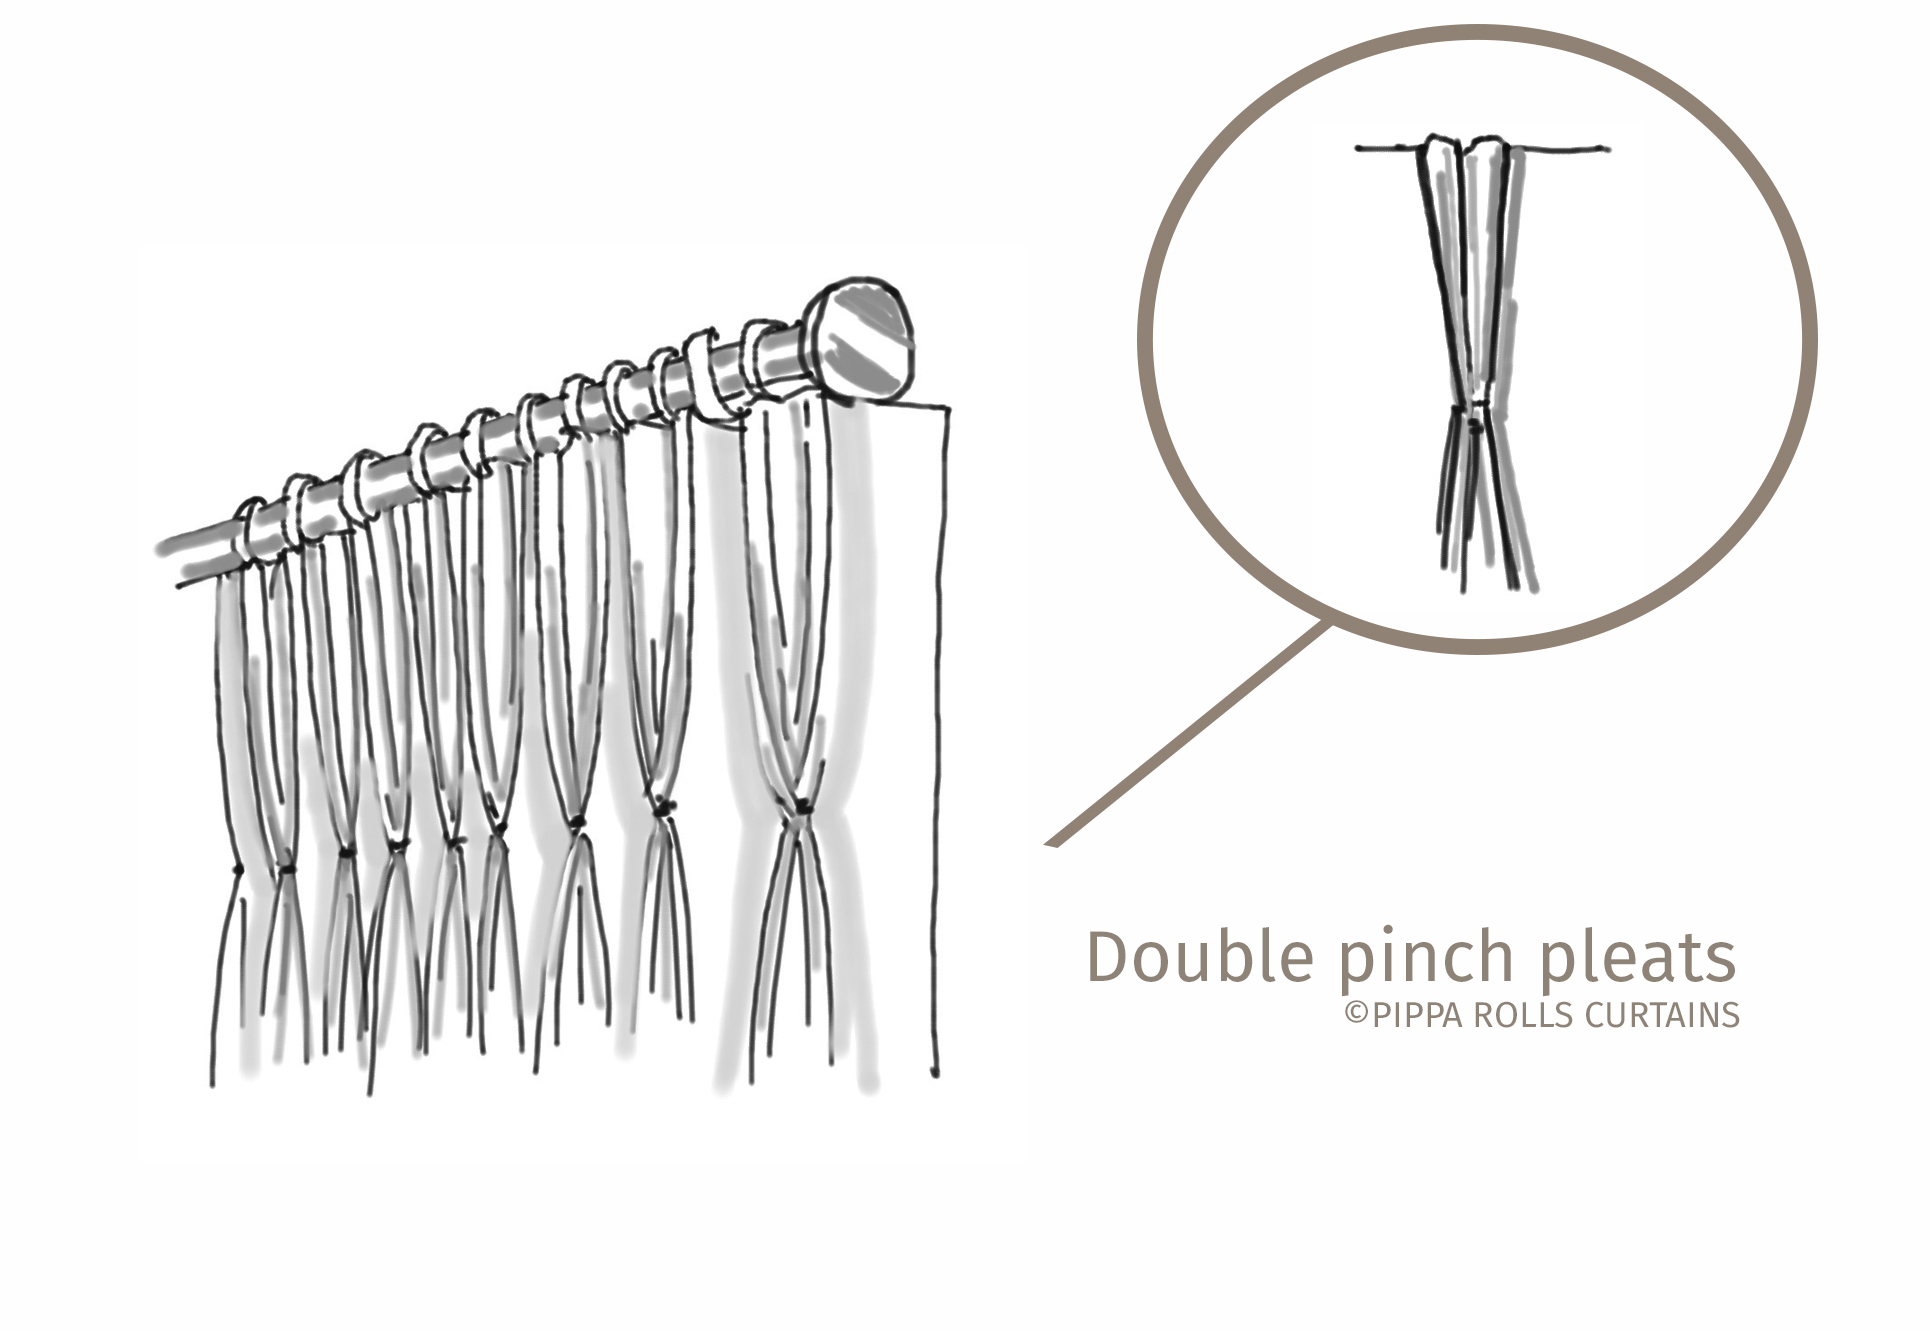 Double pinch pleats jpeg.jpg